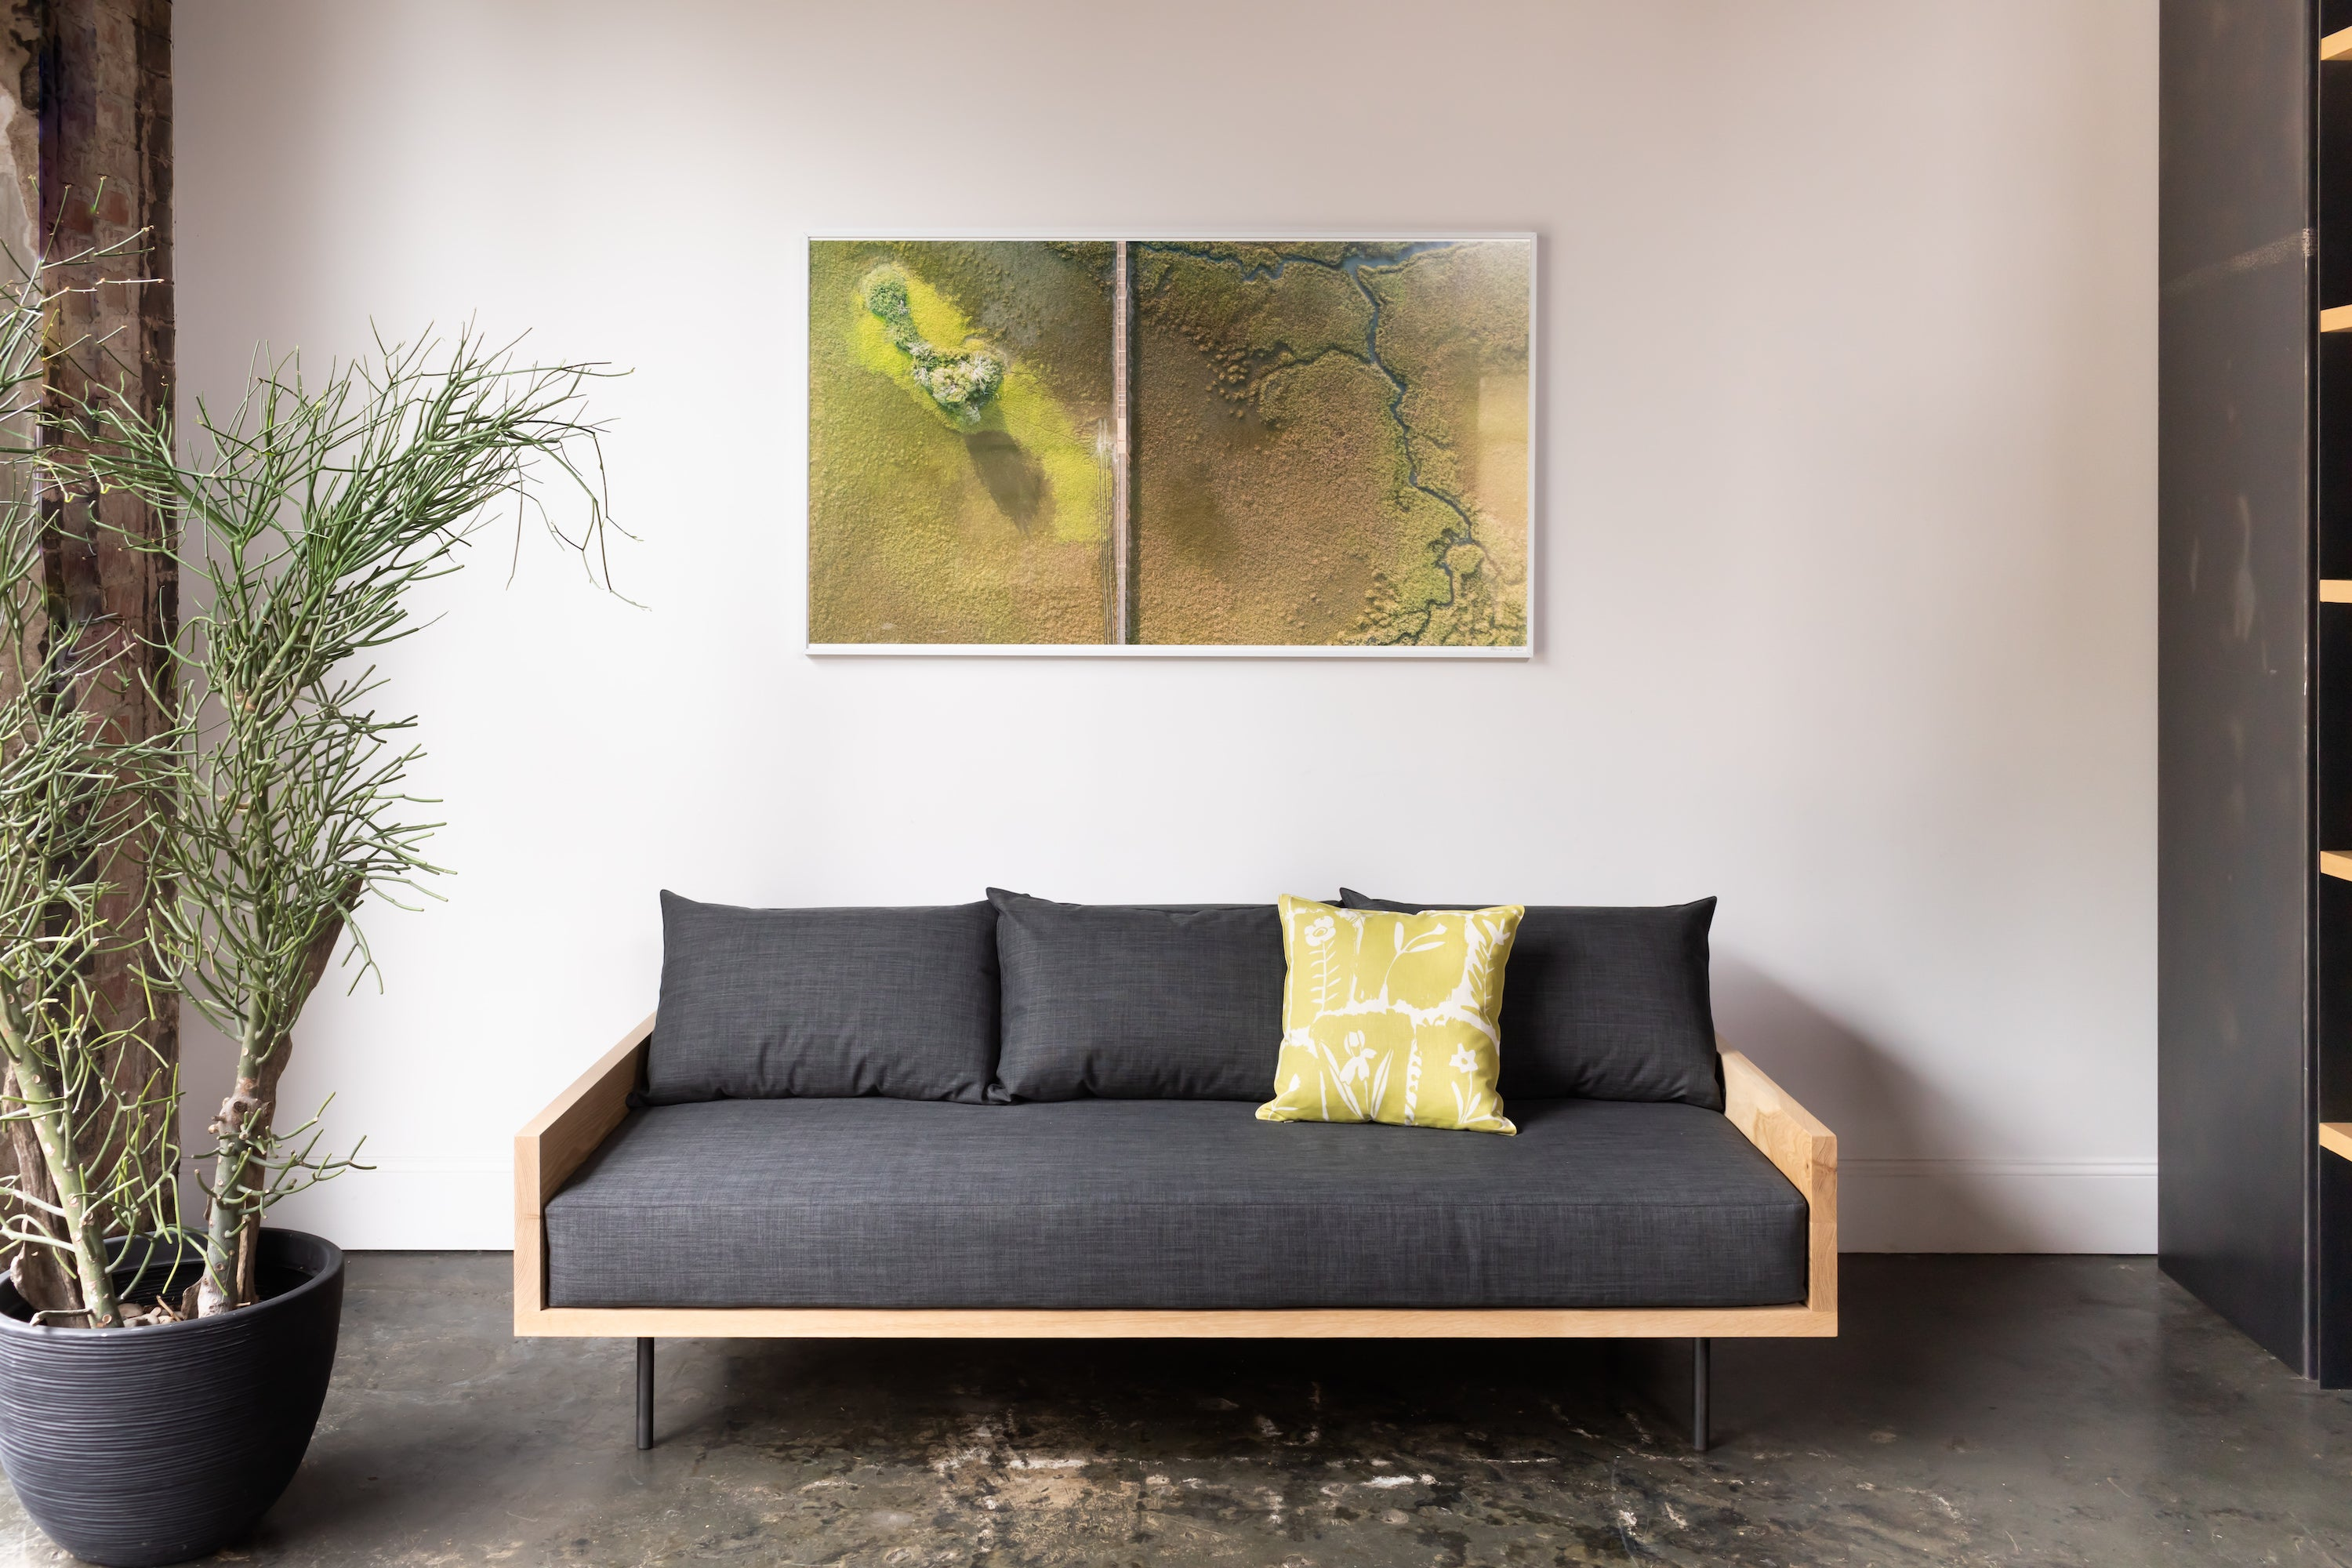 The Visual & Emotional Impact of Art in Your Home